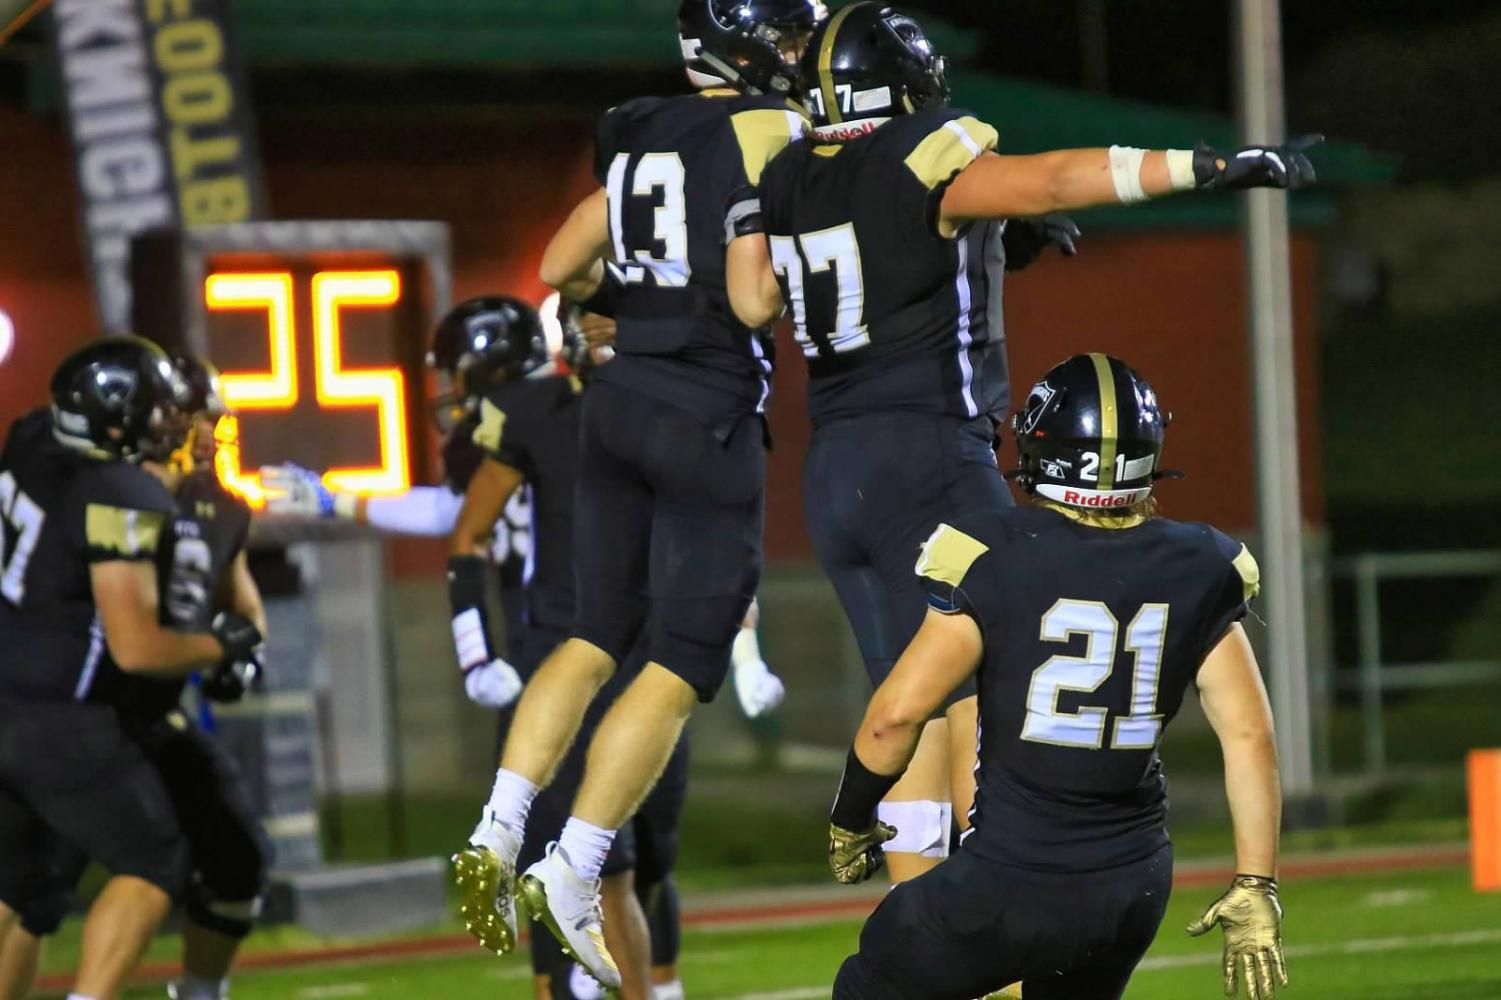 Isaac Gifford (13) celebrates with teammates Xavier Trevino (77) and Nick Halleen (21) after a touchdown.